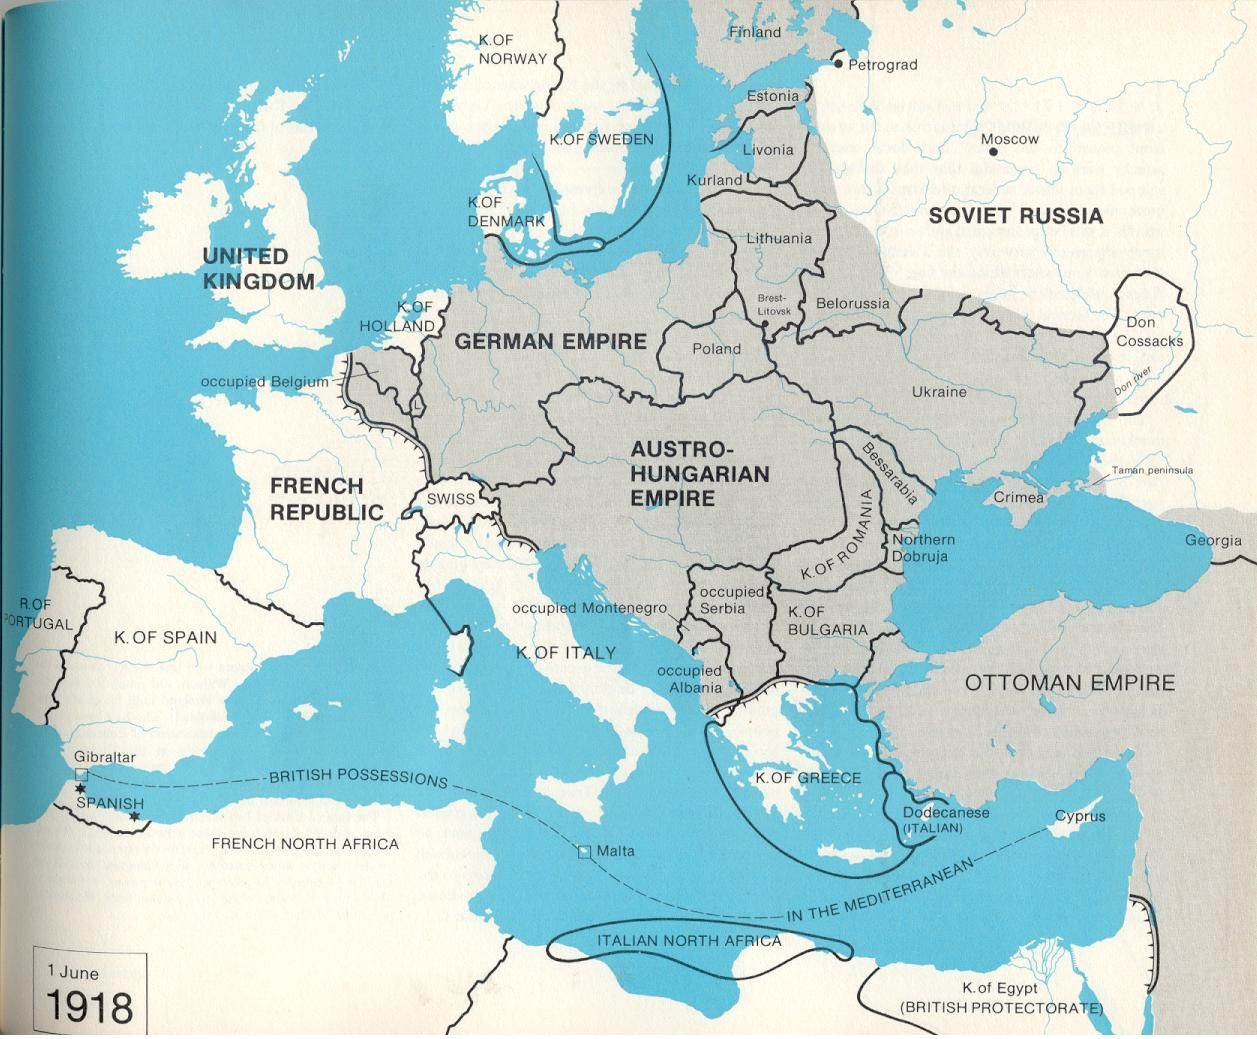 The Treaty Of Brest Litovsk Was A Peace Treaty Signed On 3